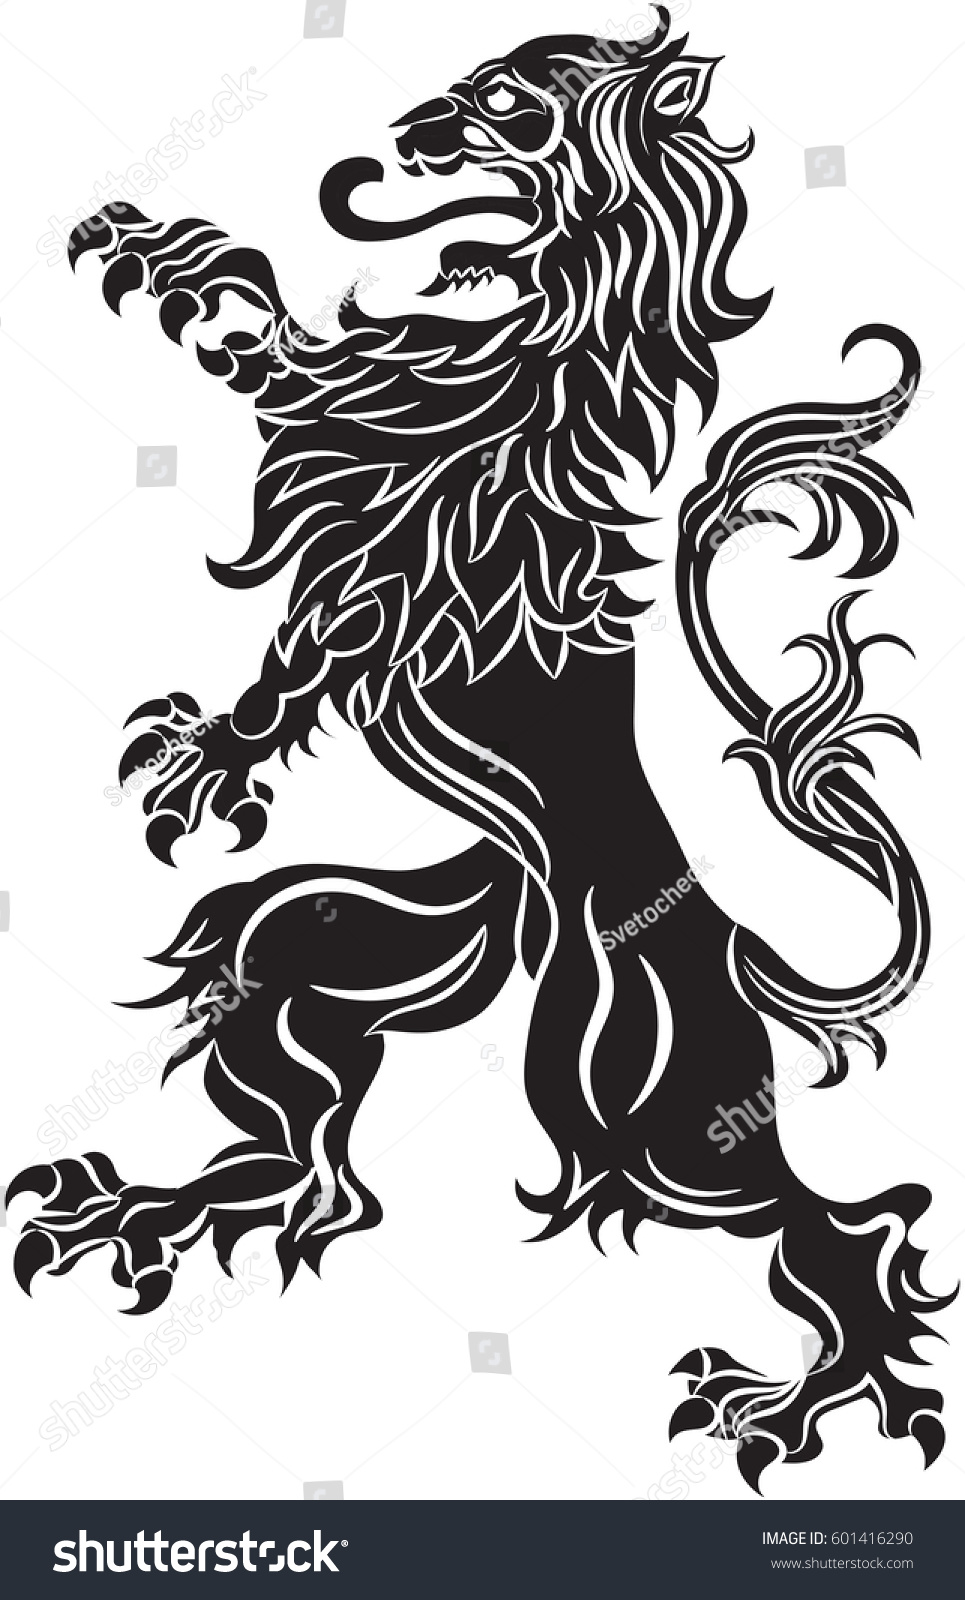 How to breed heraldic dragon - The Rebels Lion The Heraldic Symbol Used In The Flags And Coats Of Arms